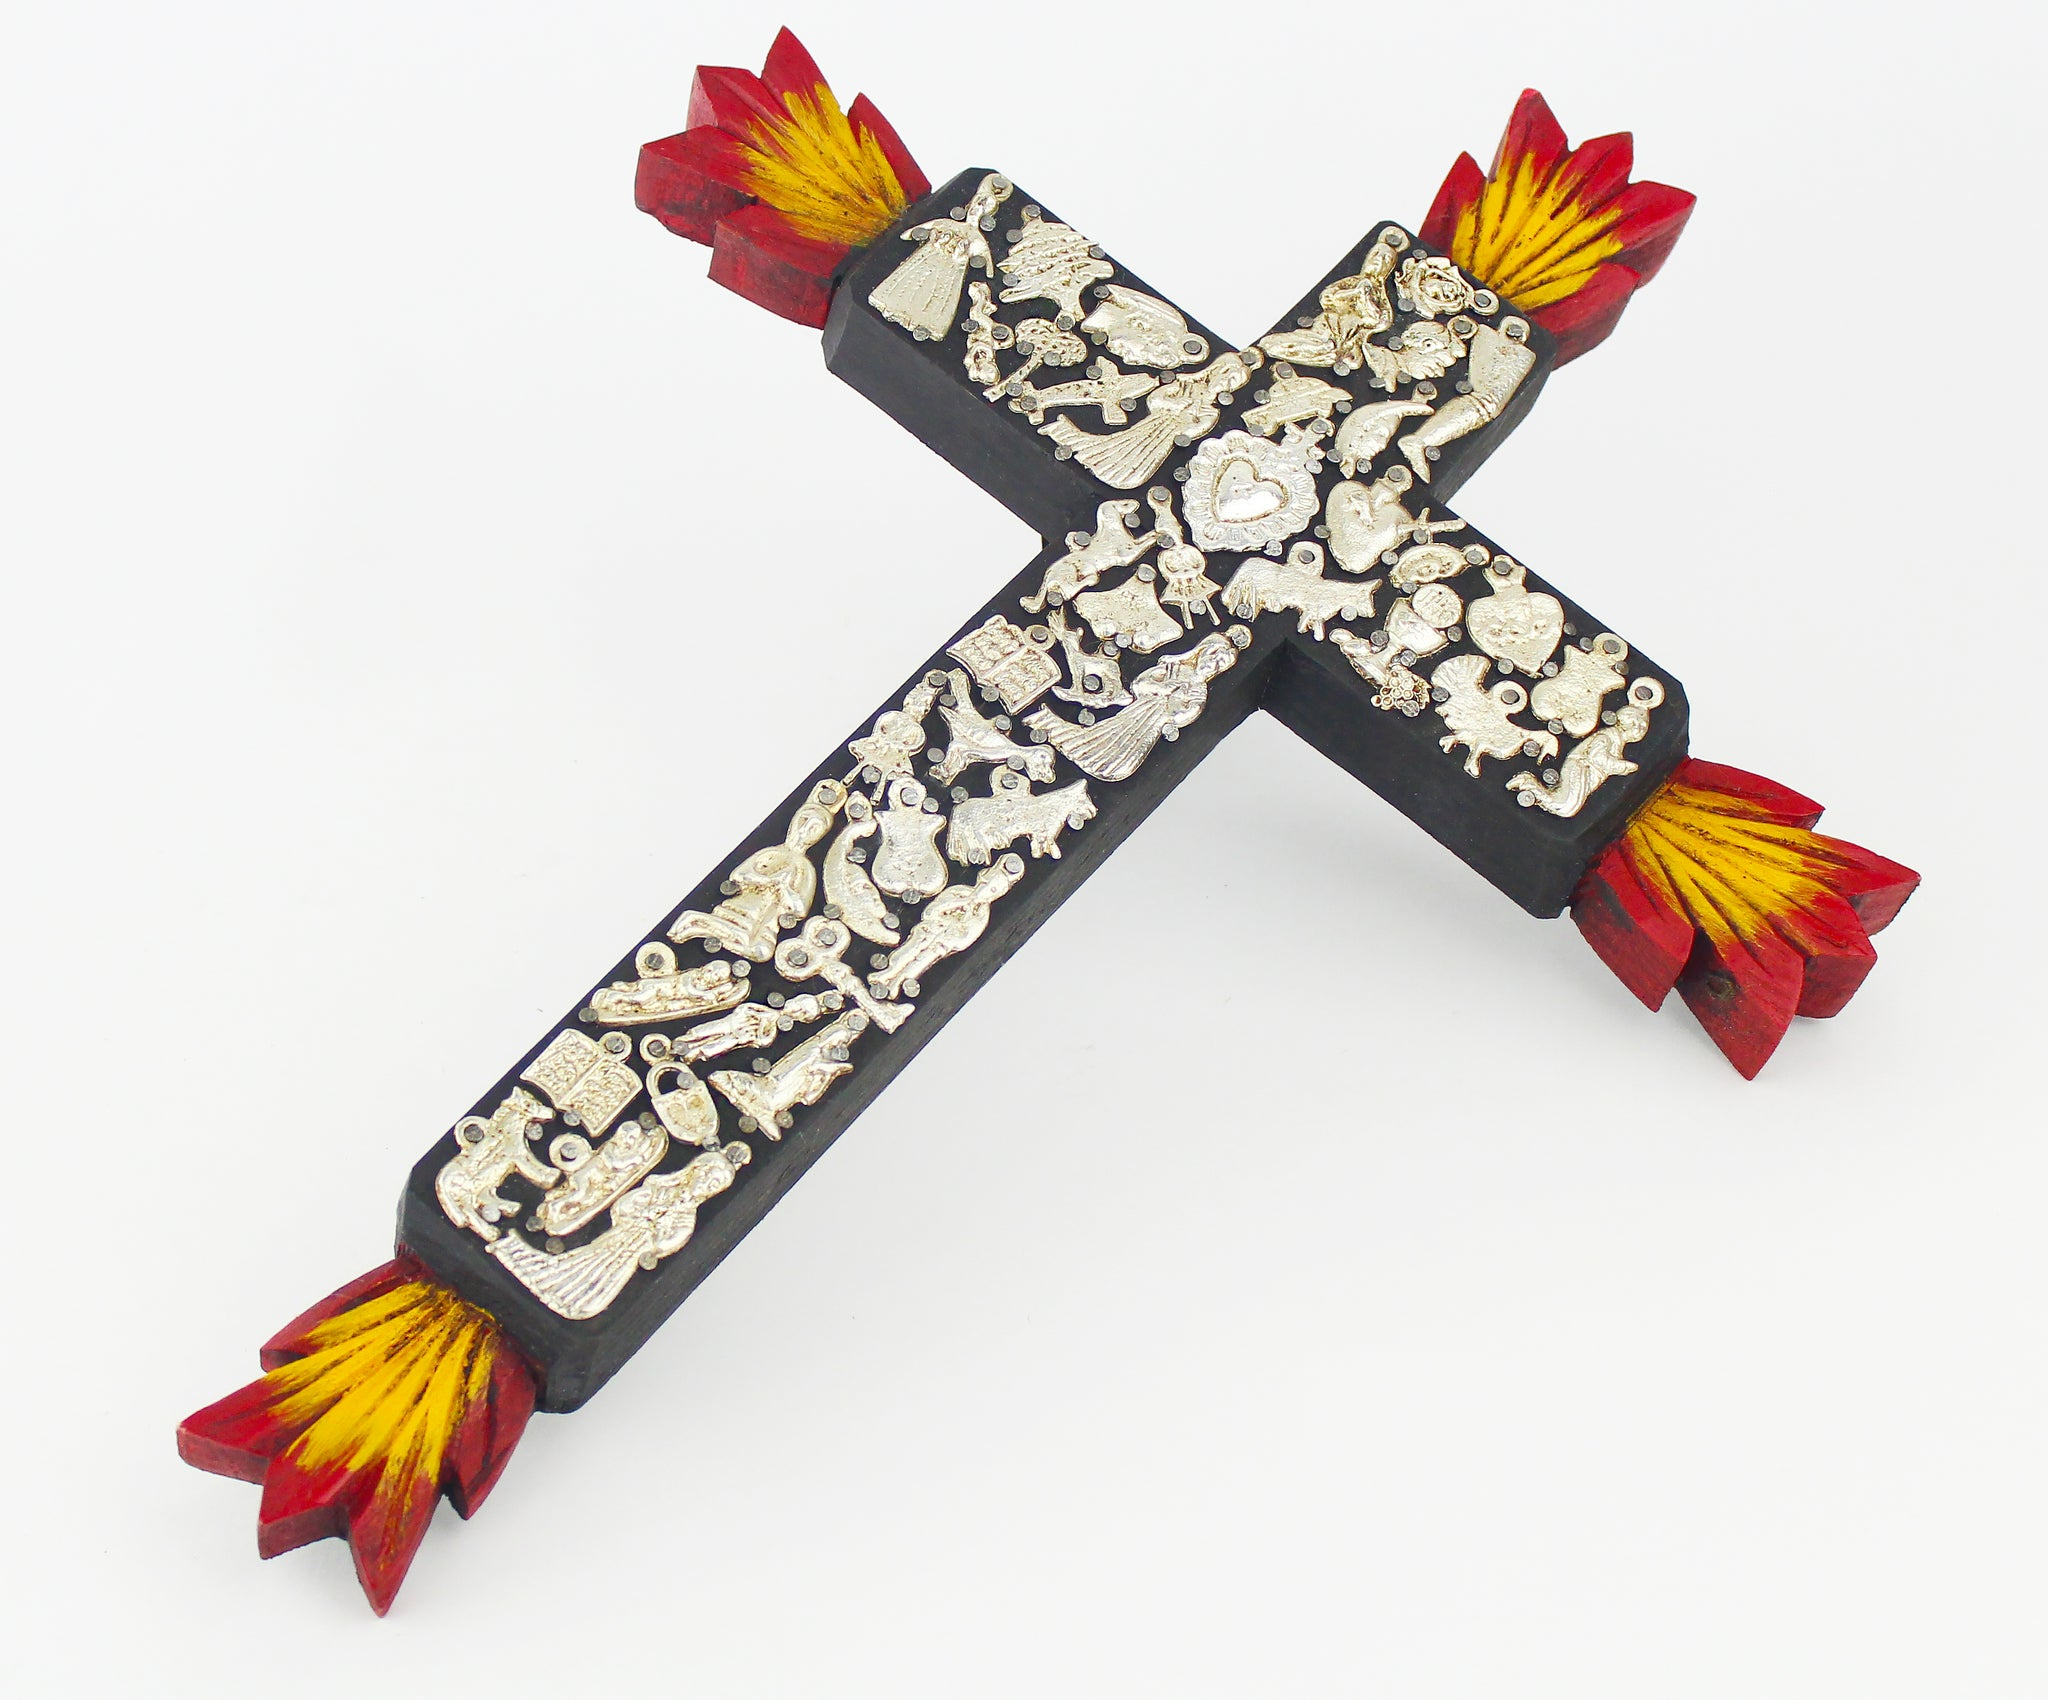 Illuminated Milagros Crosses